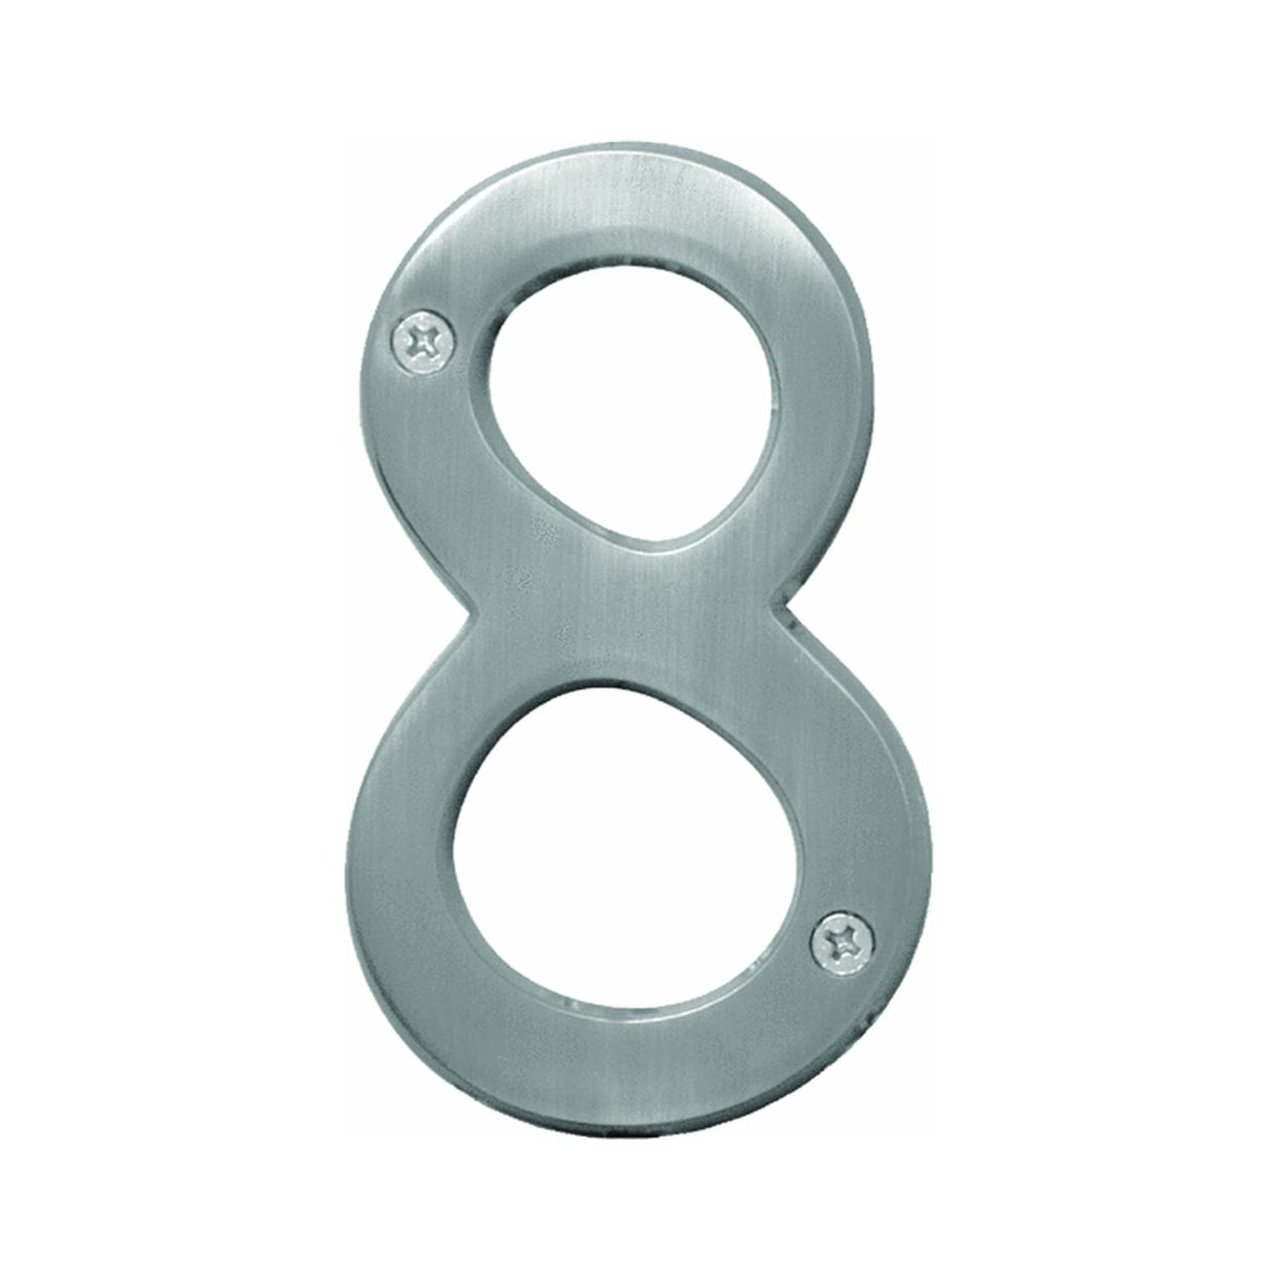 4 Inch House Number #8